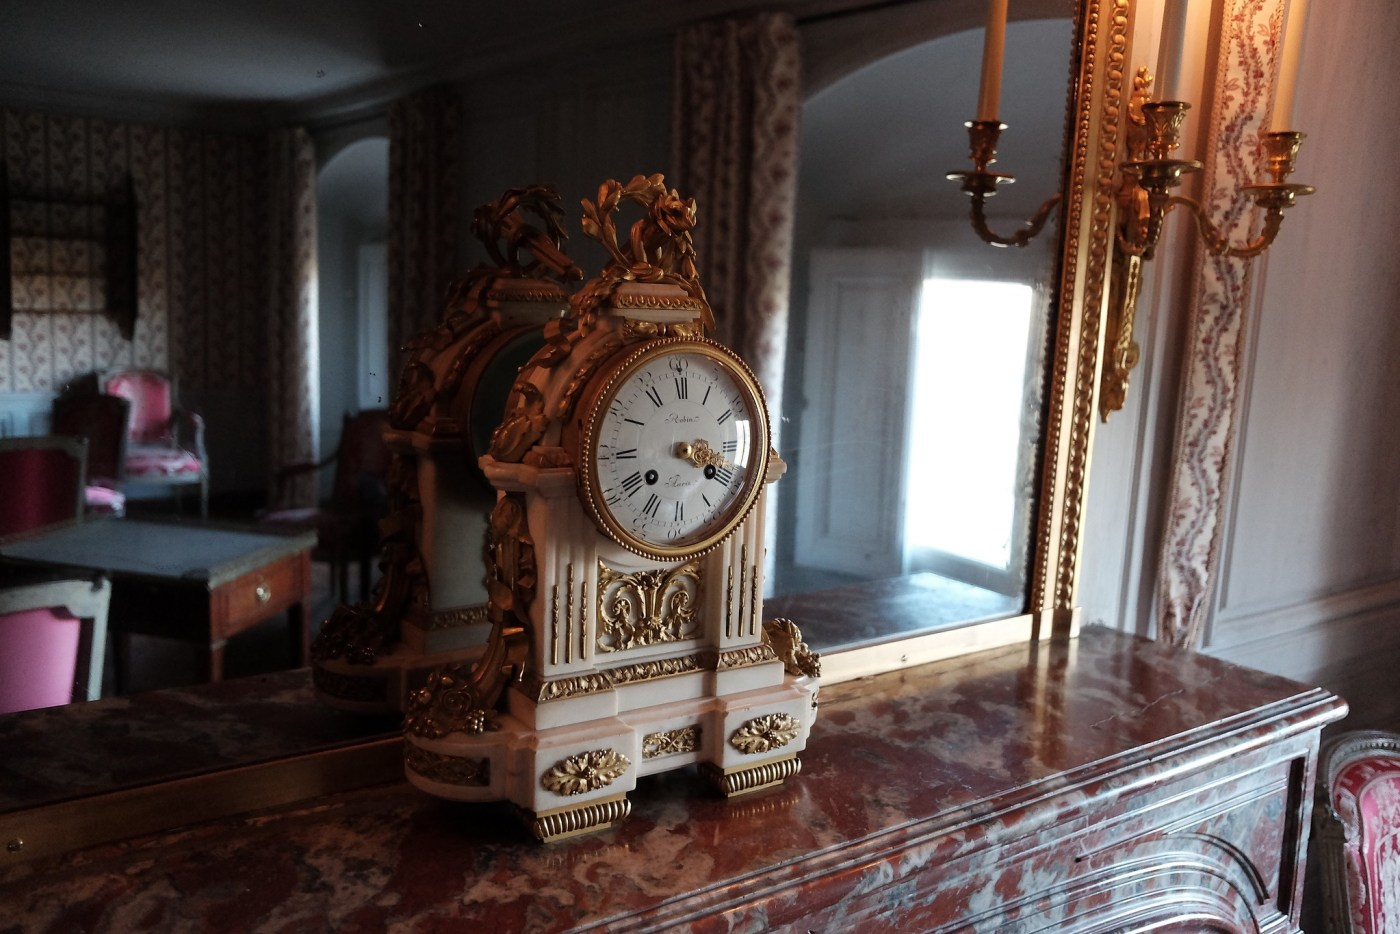 Breguet donated 7 million Euros to the Chauteau de Versailles foundation to restore Petit Trianon, Marie-Antoinette's home, including beautiful Royal clocks in almost every room